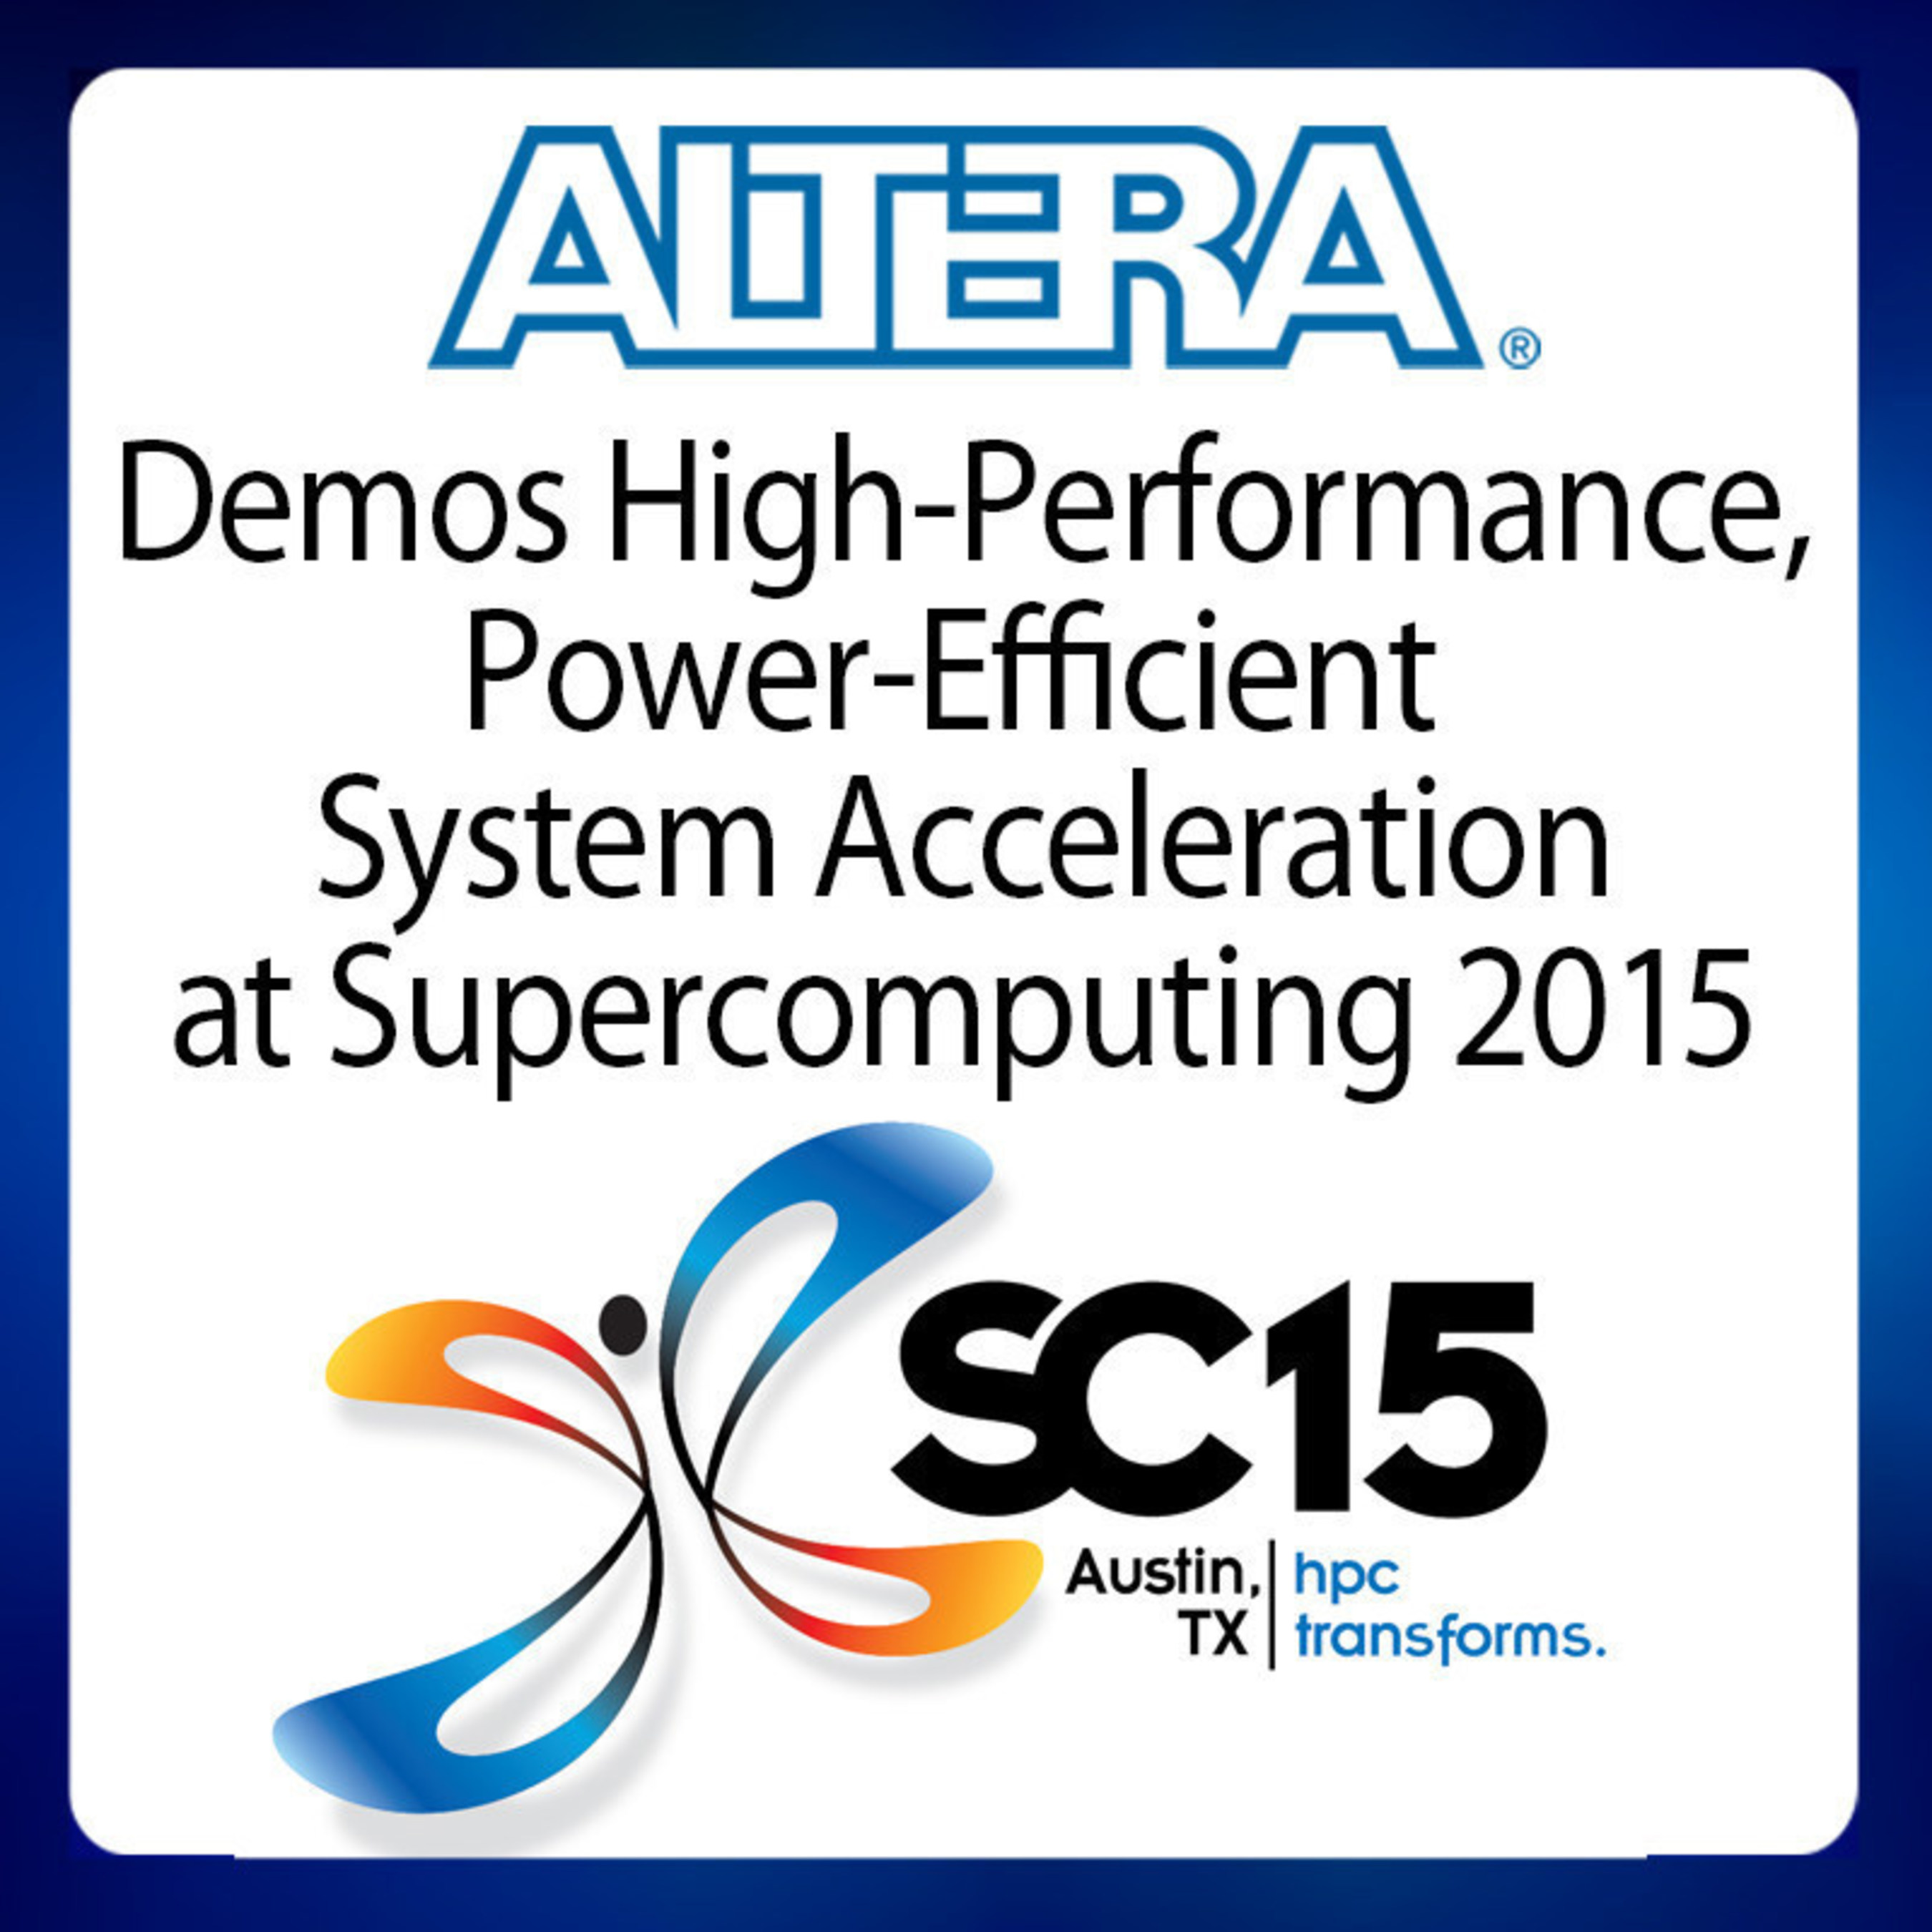 Altera FPGAs and SoCs will be featured at Supercomputing 2015.